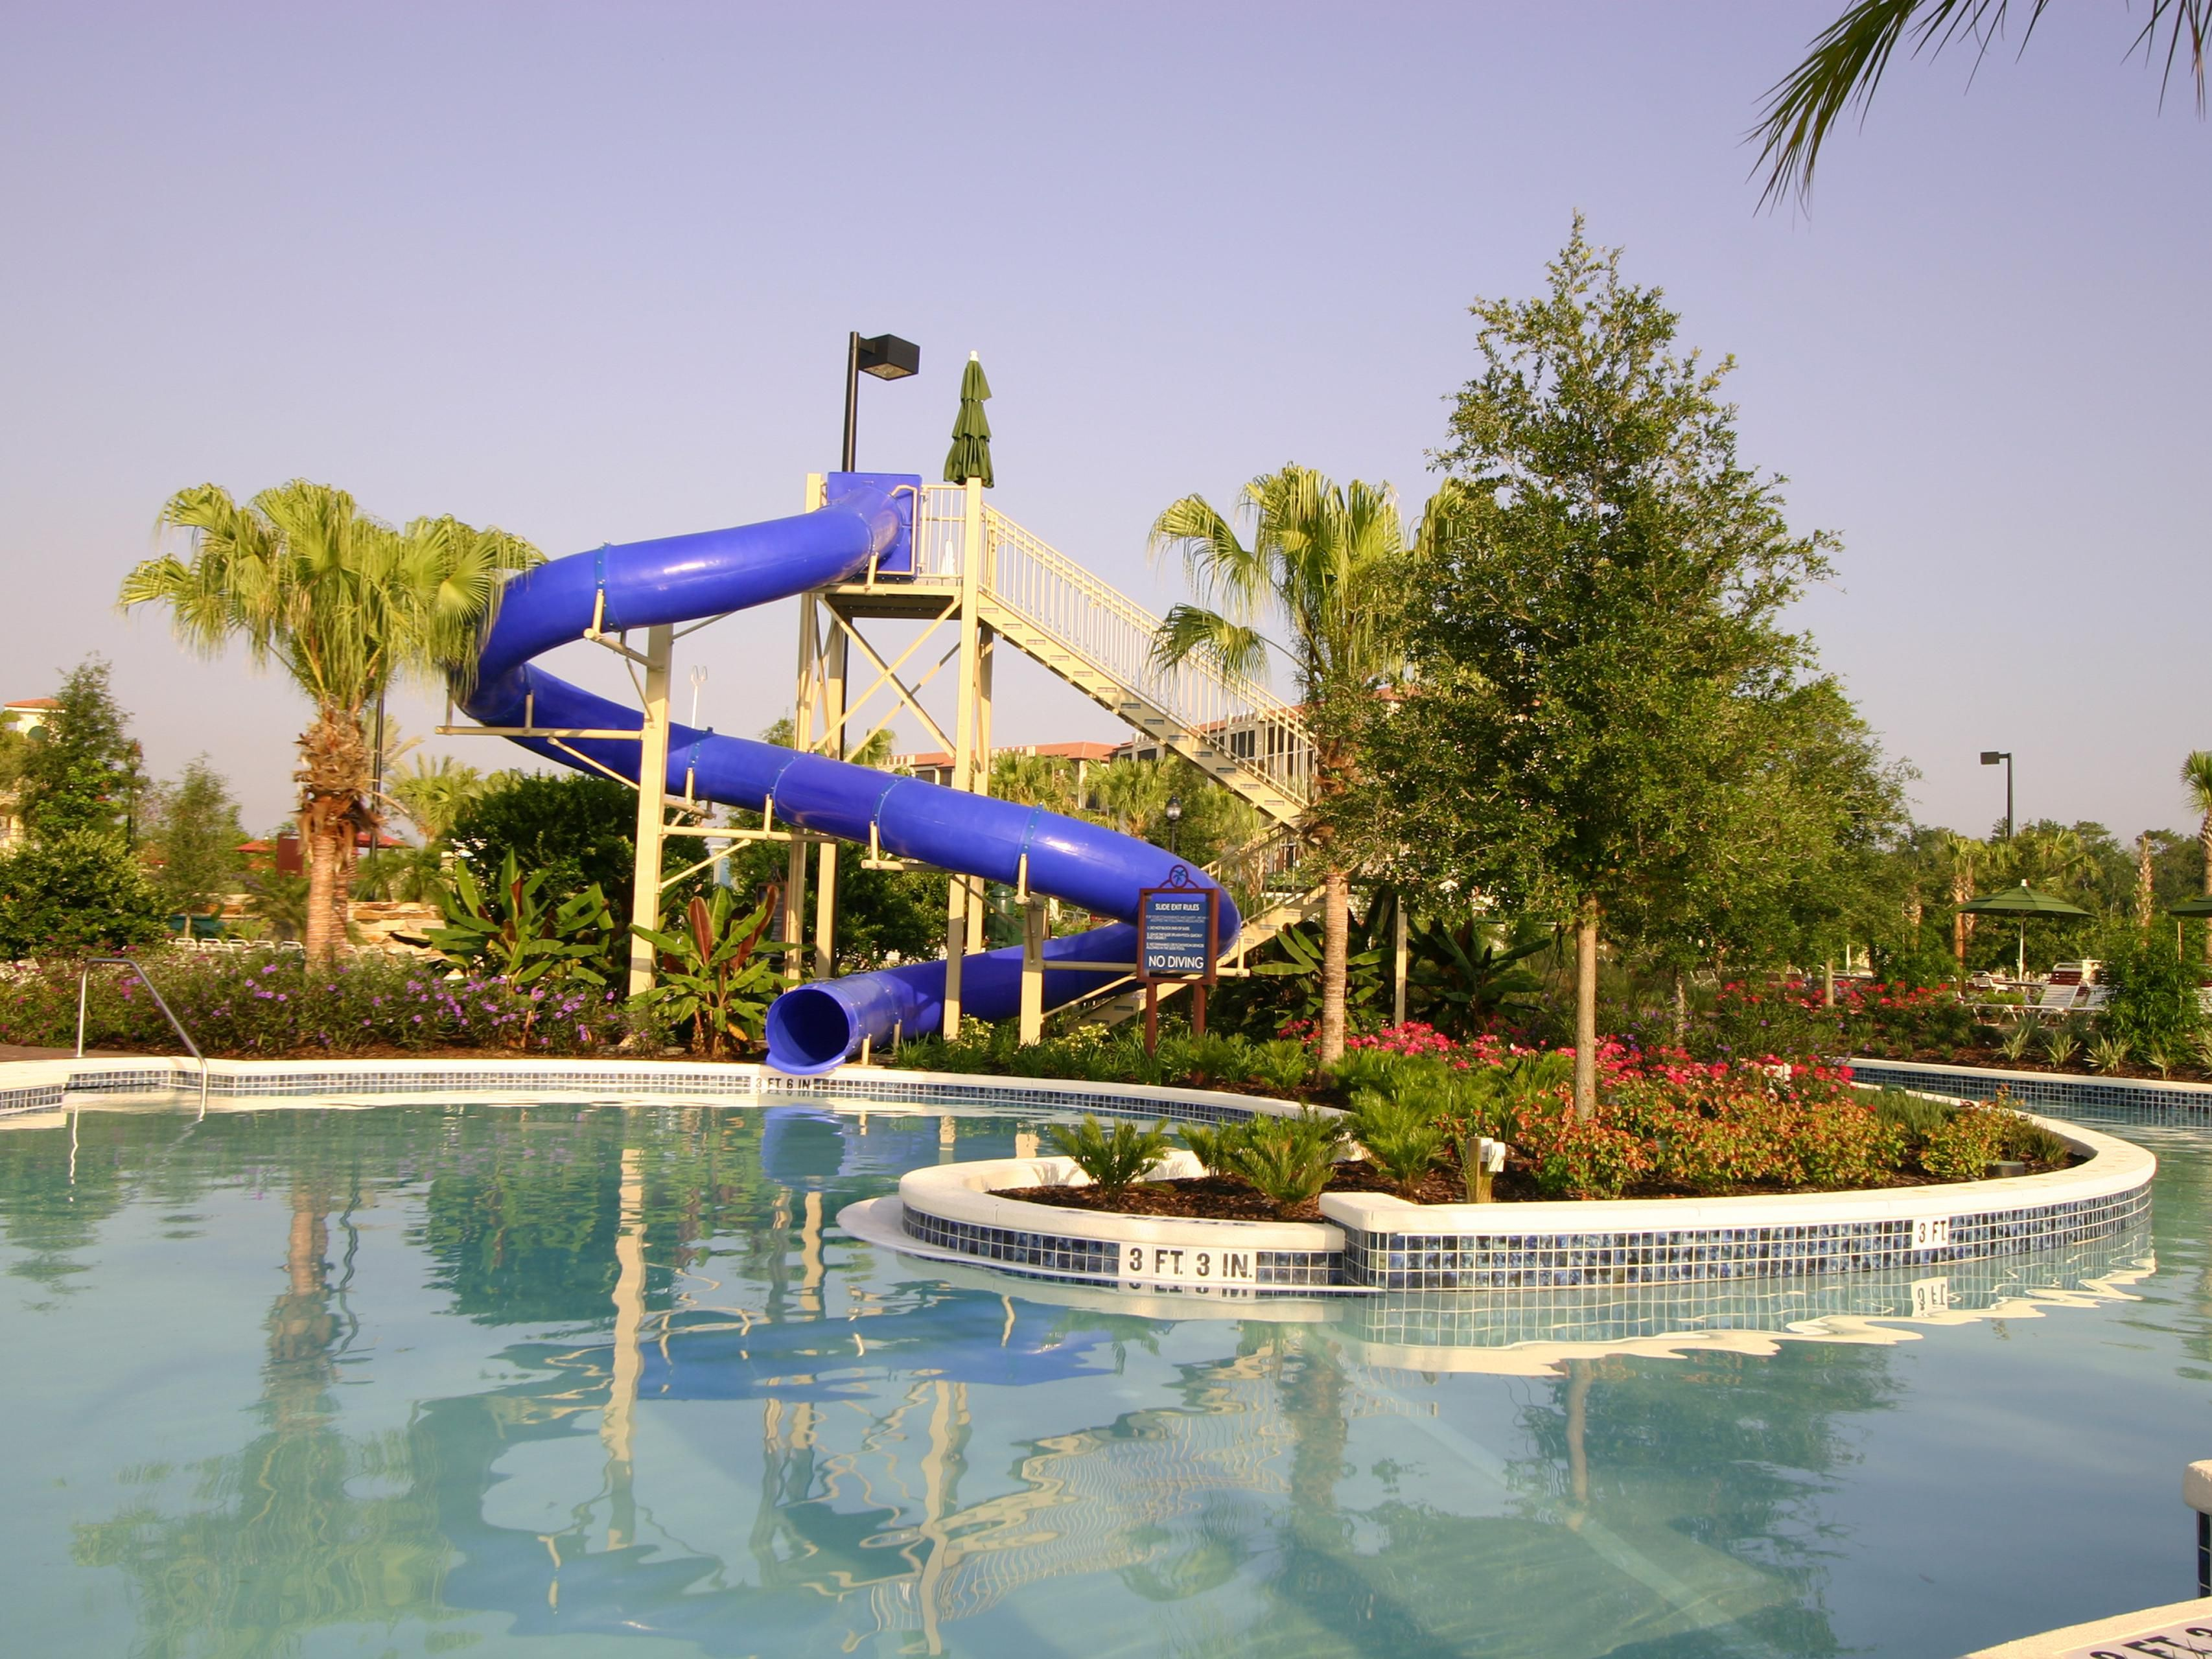 Enjoy water slides and the lazy river in River Island